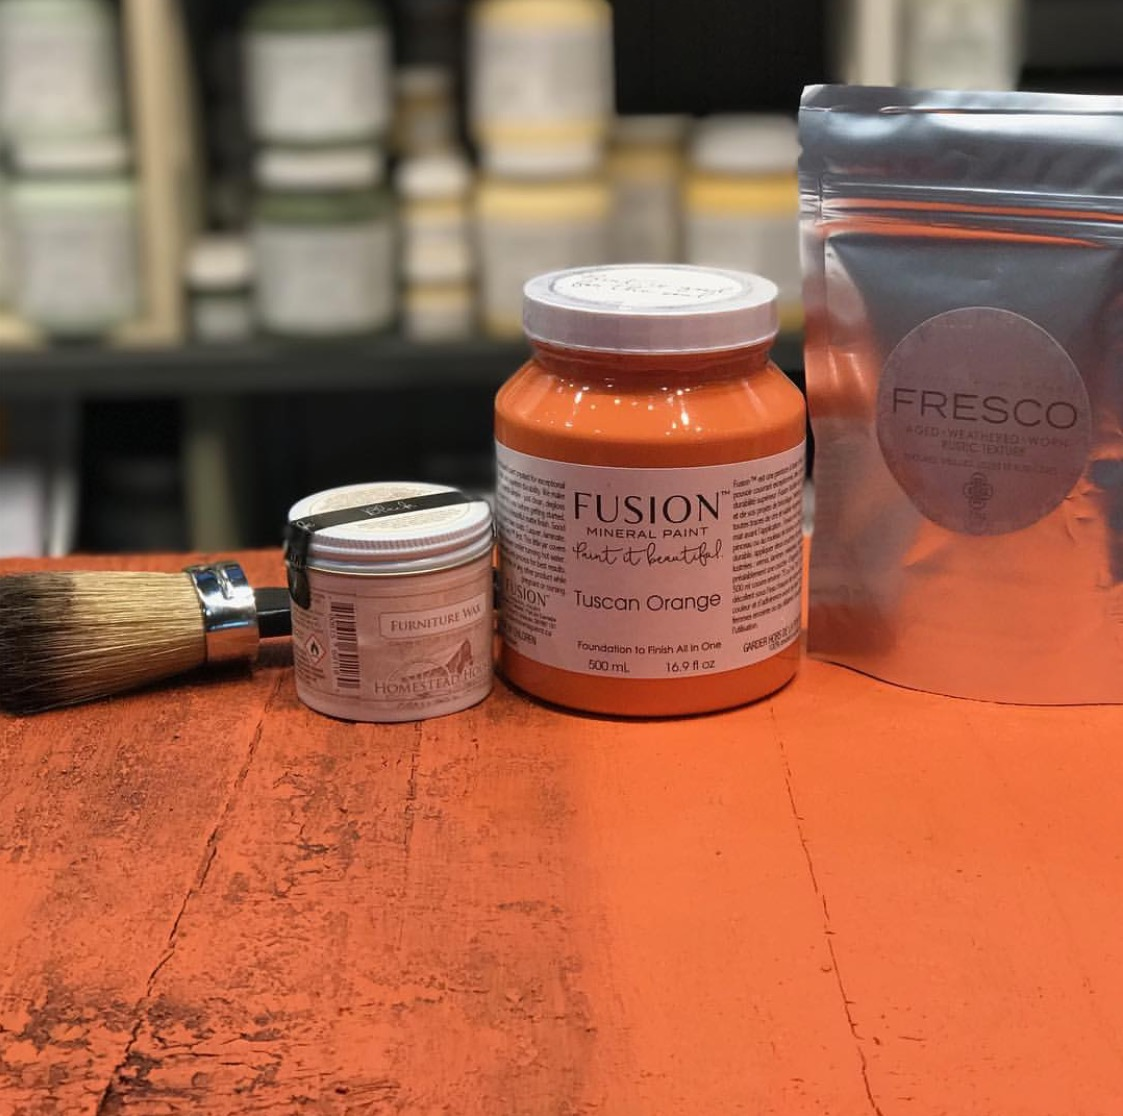 Tuscan Orange With Fresco Texturizing Powder Before And After Using The Black Furniture Wax